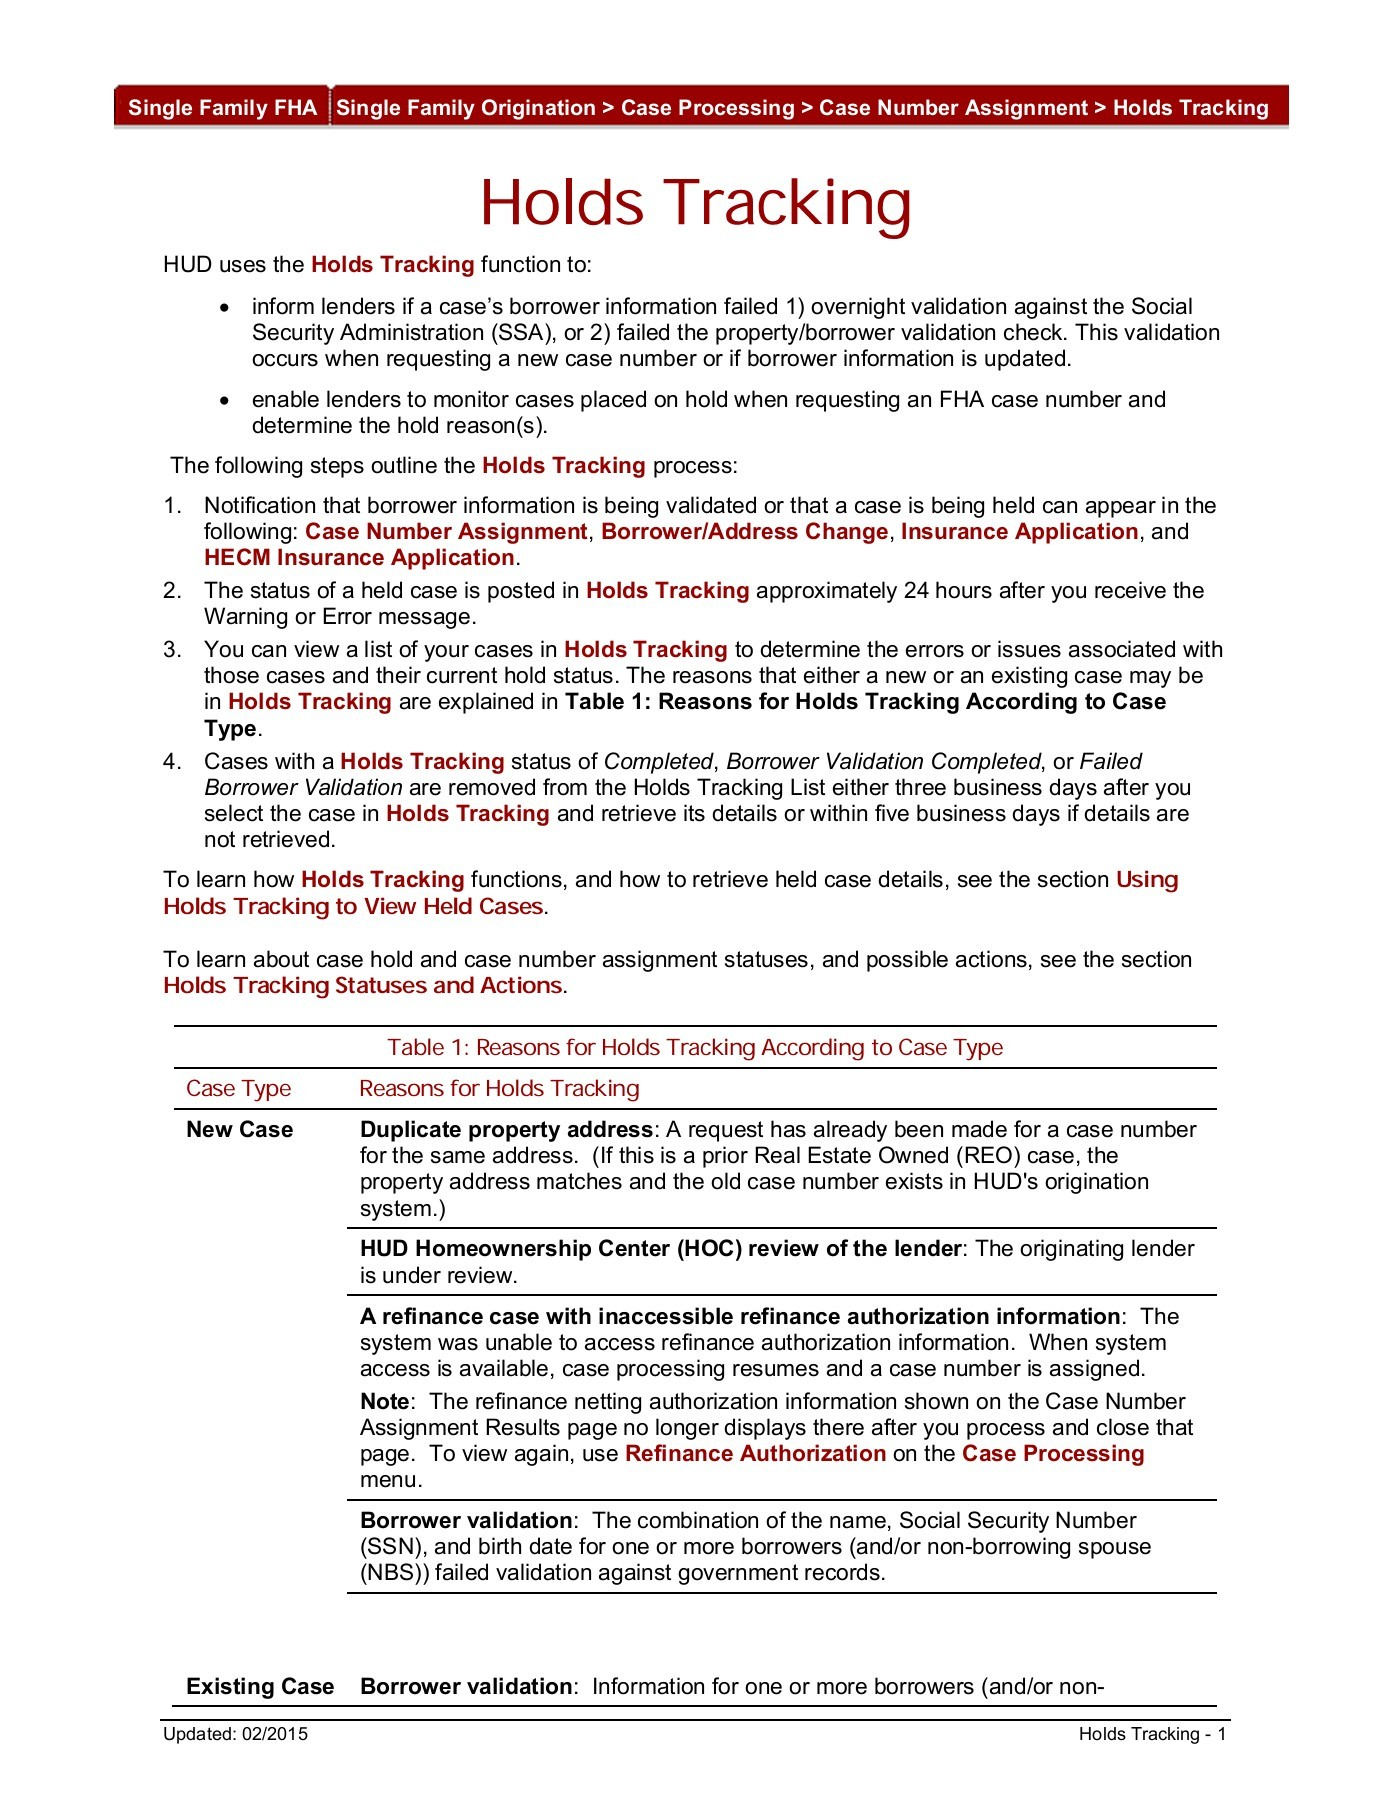 Fha Case Number Assignment American Essay Fha Case